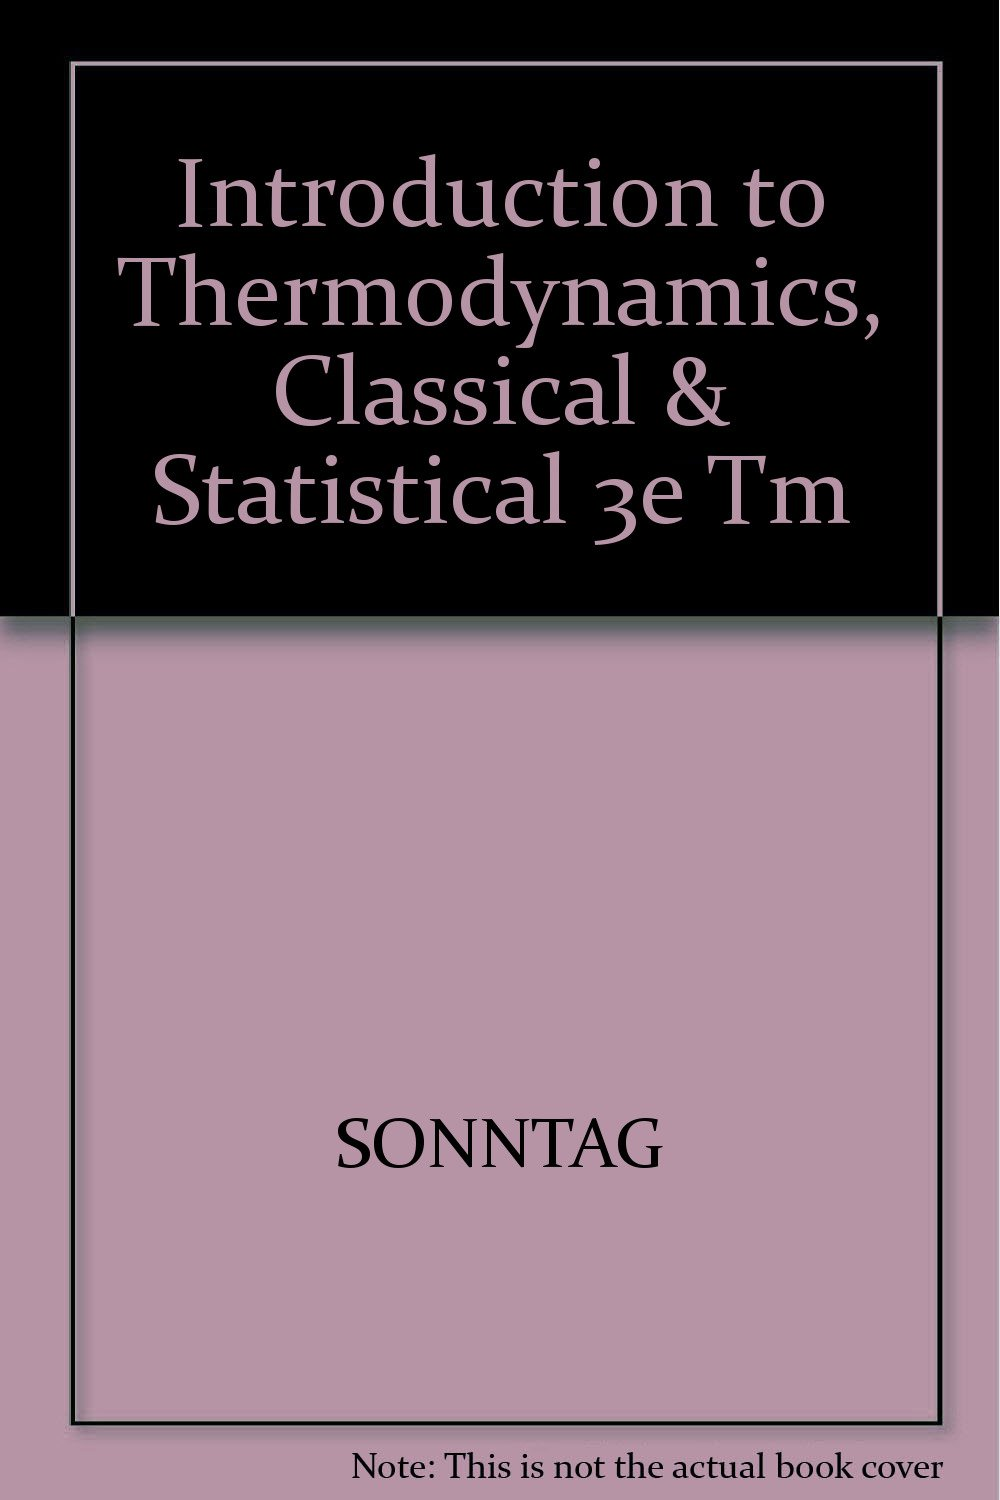 Solutions Manual to Accompany Introduction to Thermodynamics, Classical &  Statistical, 3rd Edition: Richard E. Sonntag: 9780471535164: Amazon.com:  Books